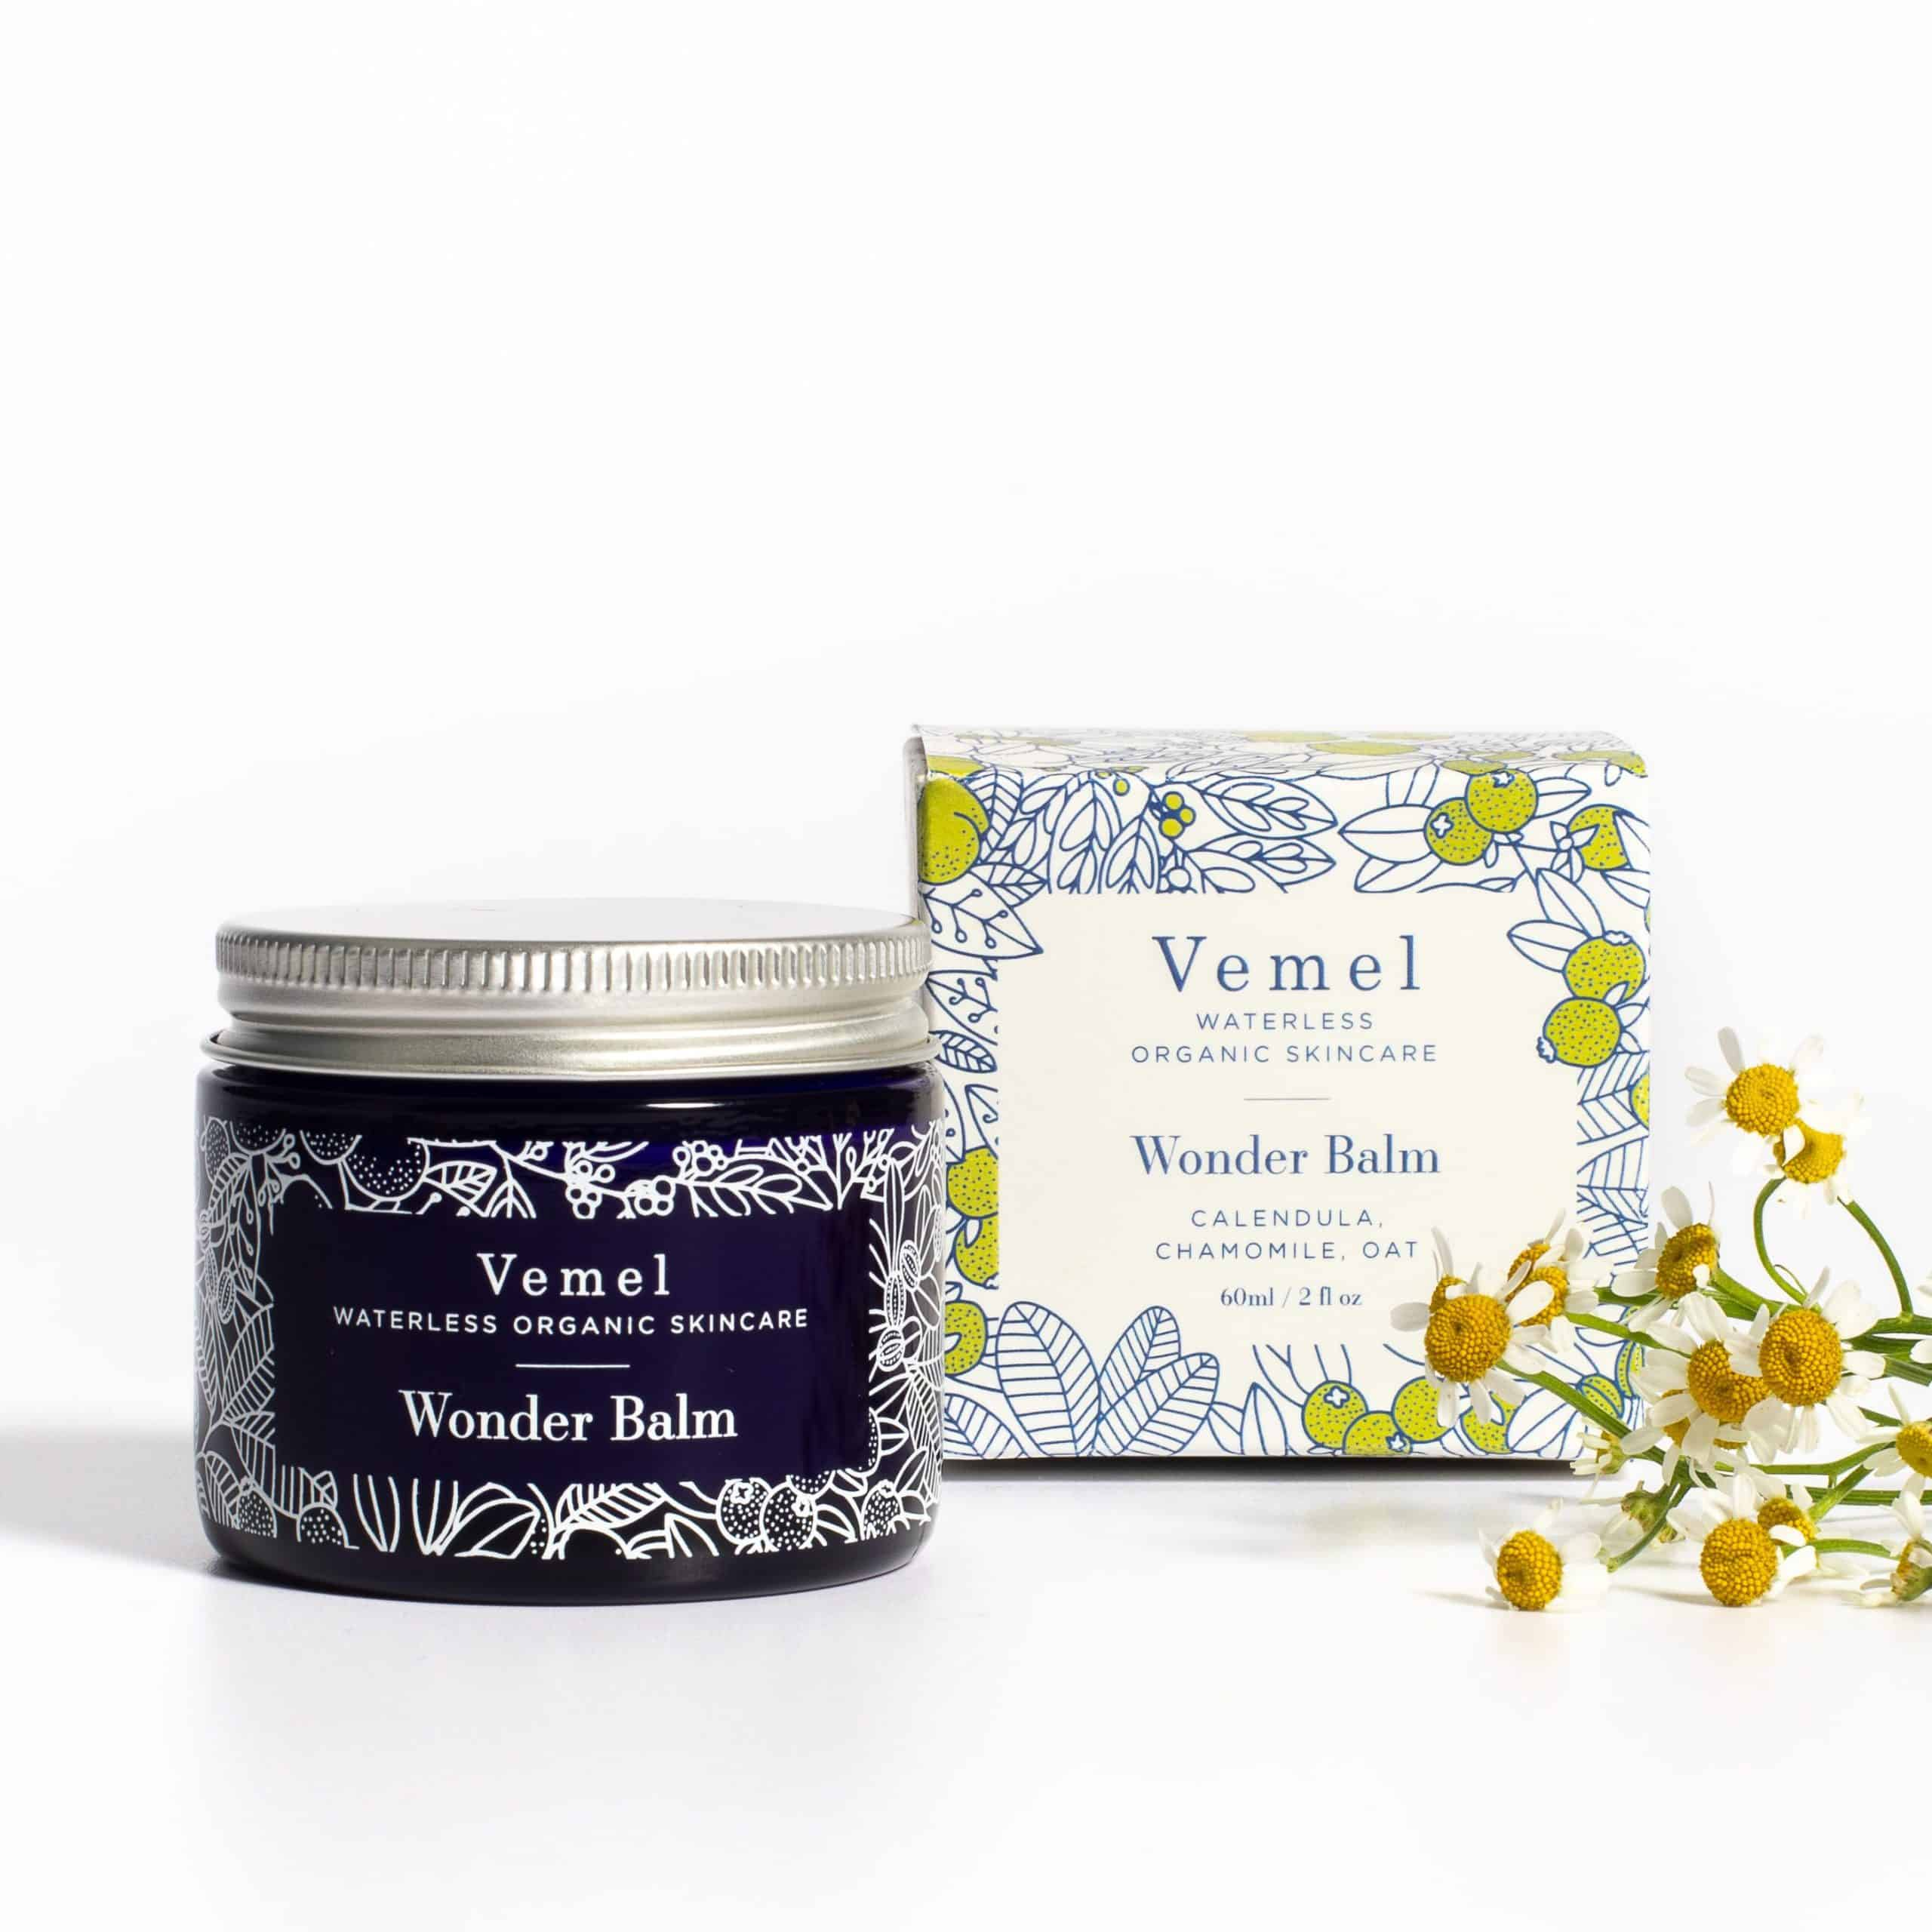 Wonder Balm from Vemel